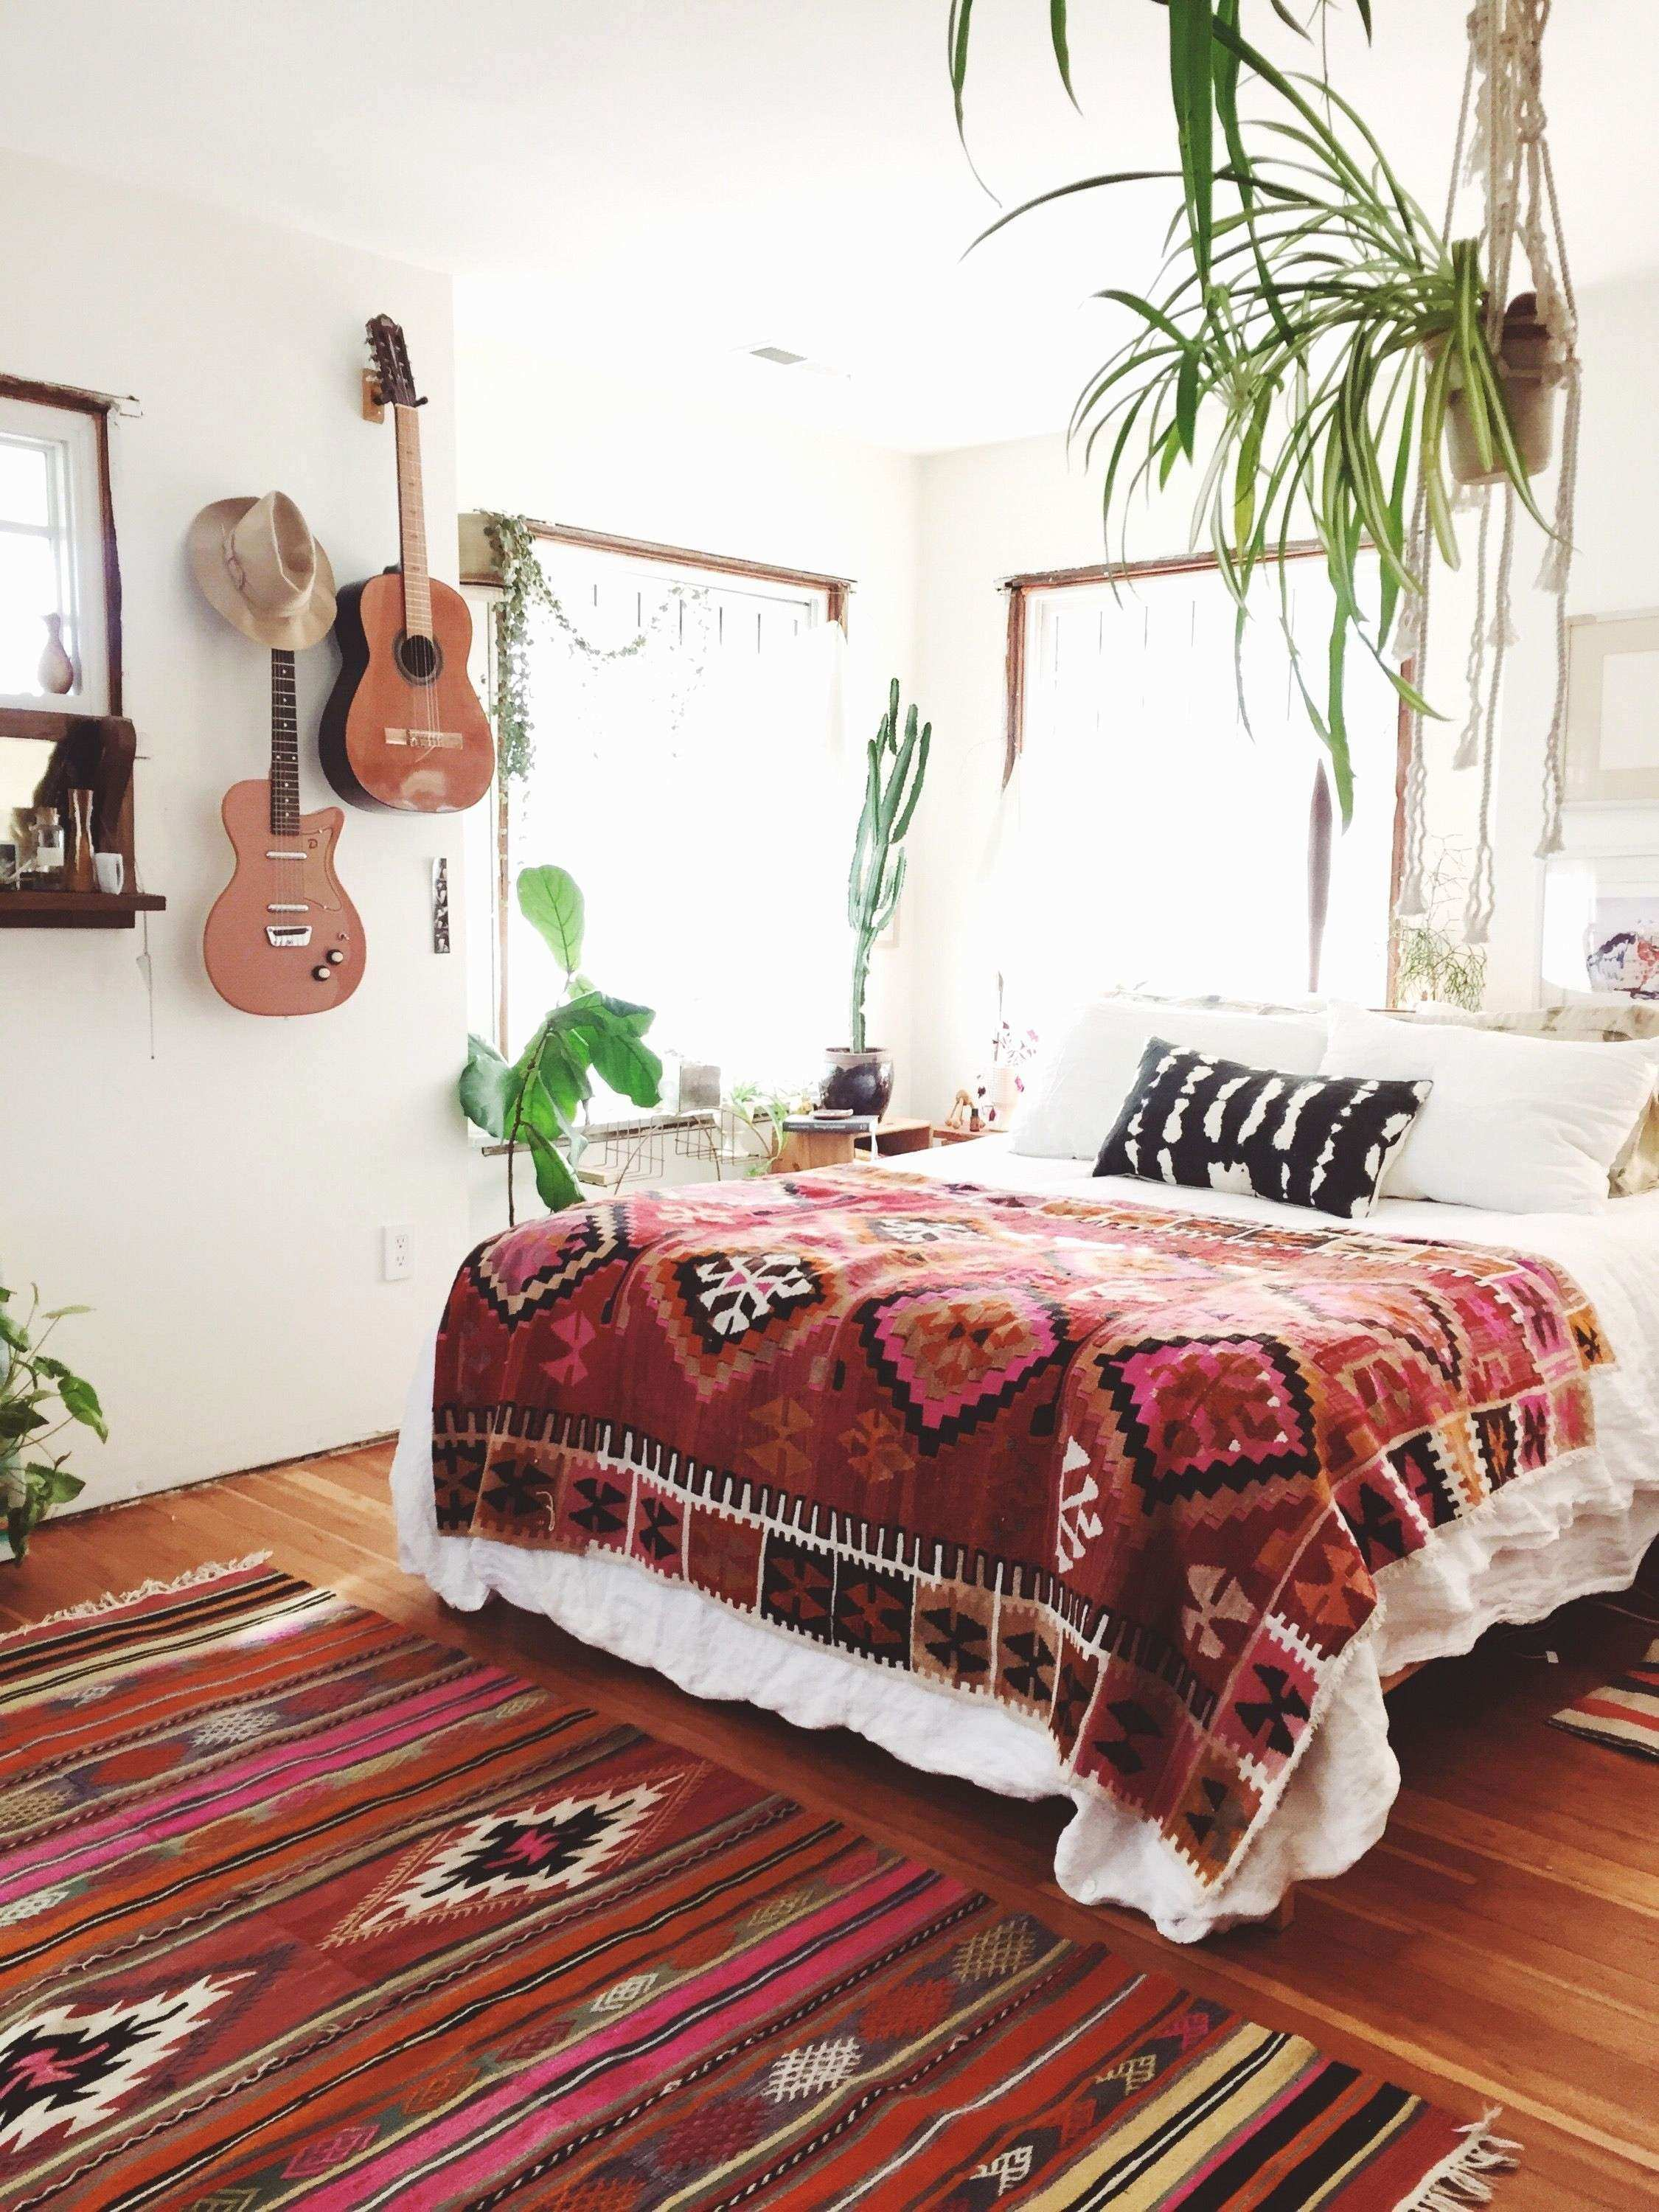 Bedroom Bedroom Wall Colors New Home Bedroom Design Full Awesome